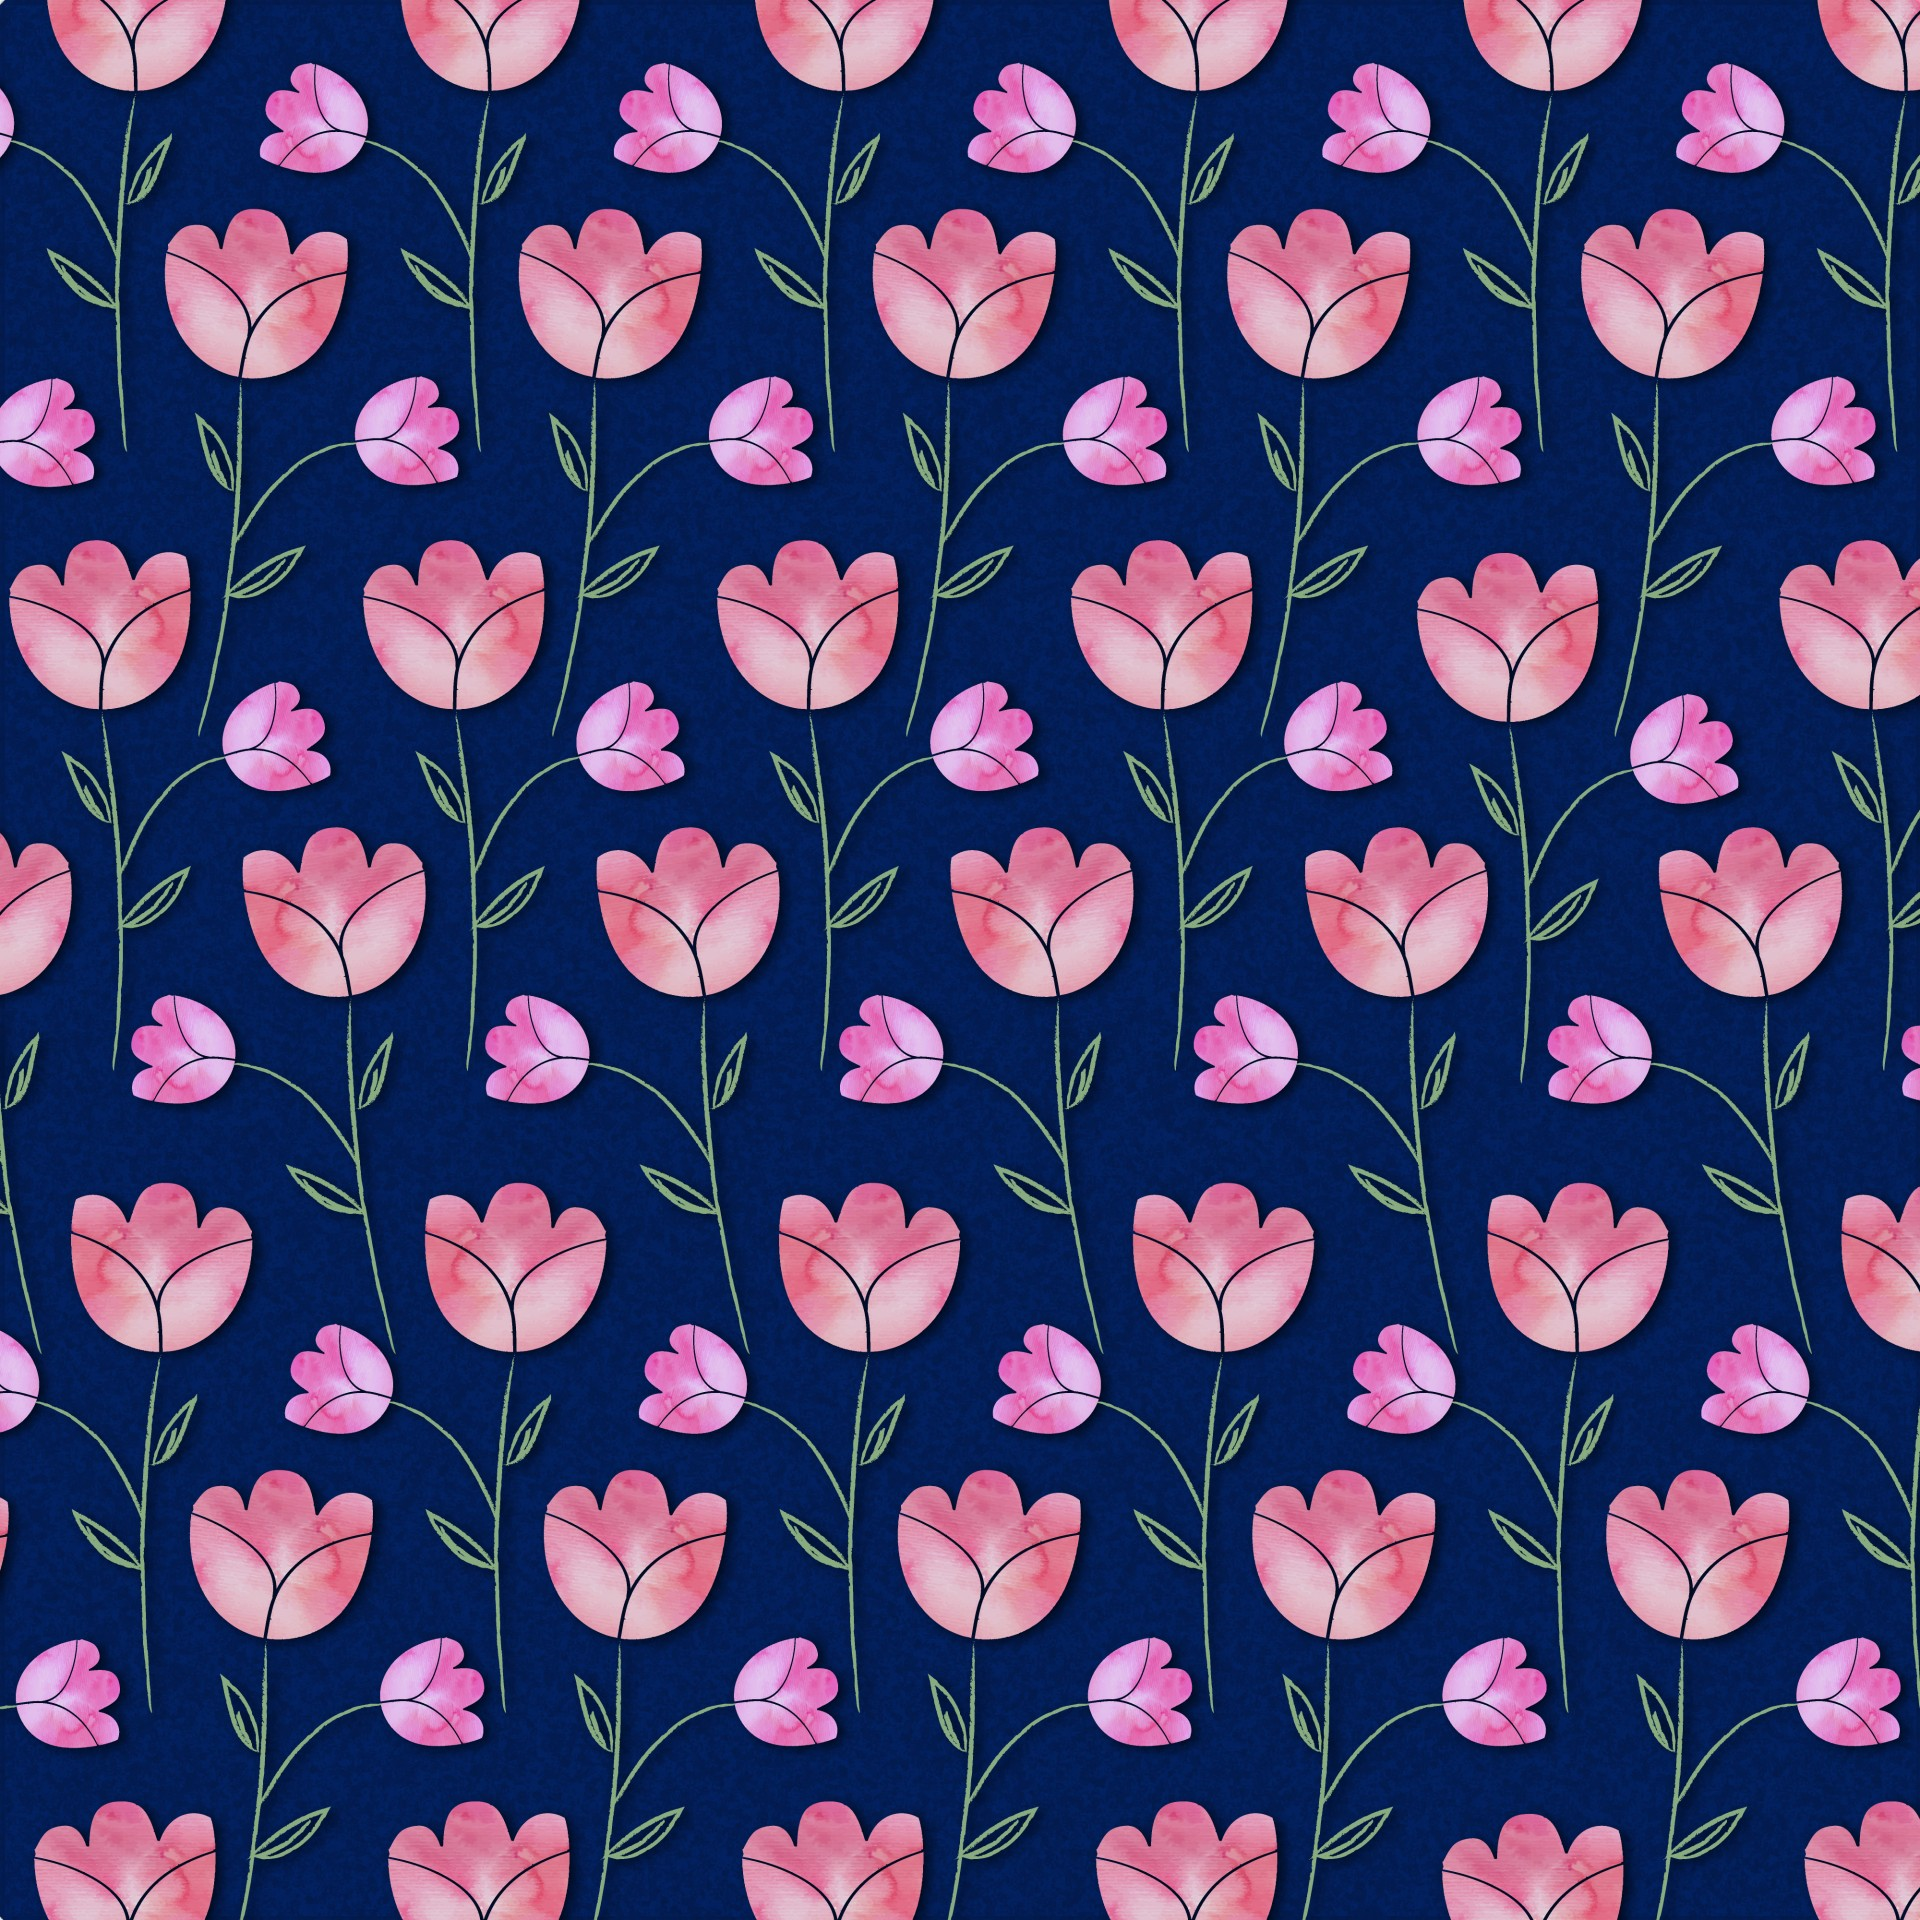 Pattern Wallpaper Hd Watercolor Flowers Pattern Free Stock Photo Public